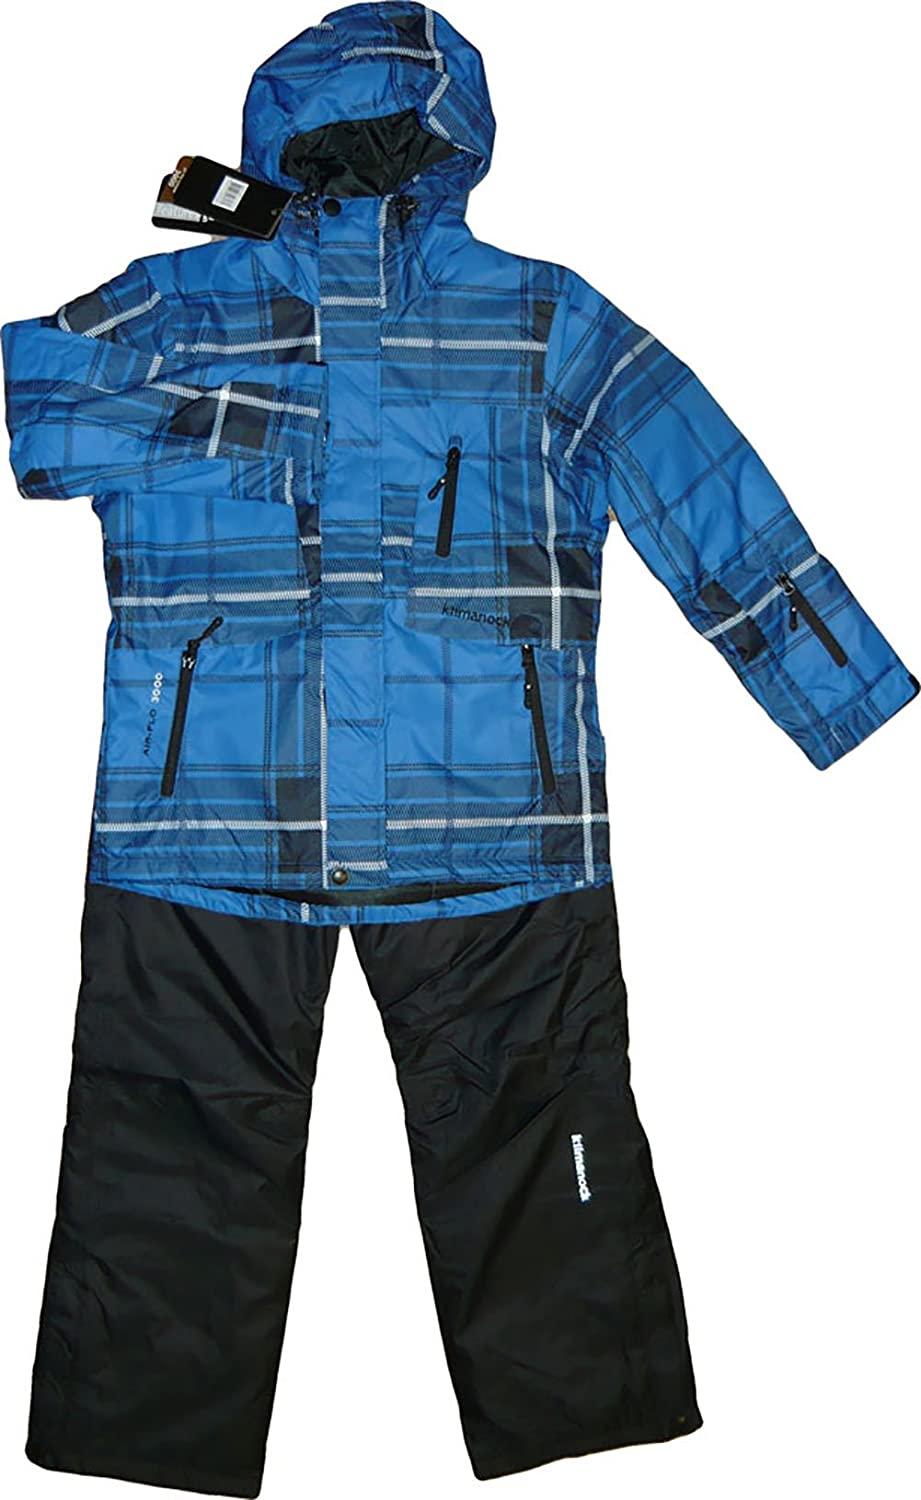 Kilmanock.Ski-Anzug, Gusty Ski Set Junior Air-flo 3000, Nautical Blue. 201389-1102 günstig online kaufen